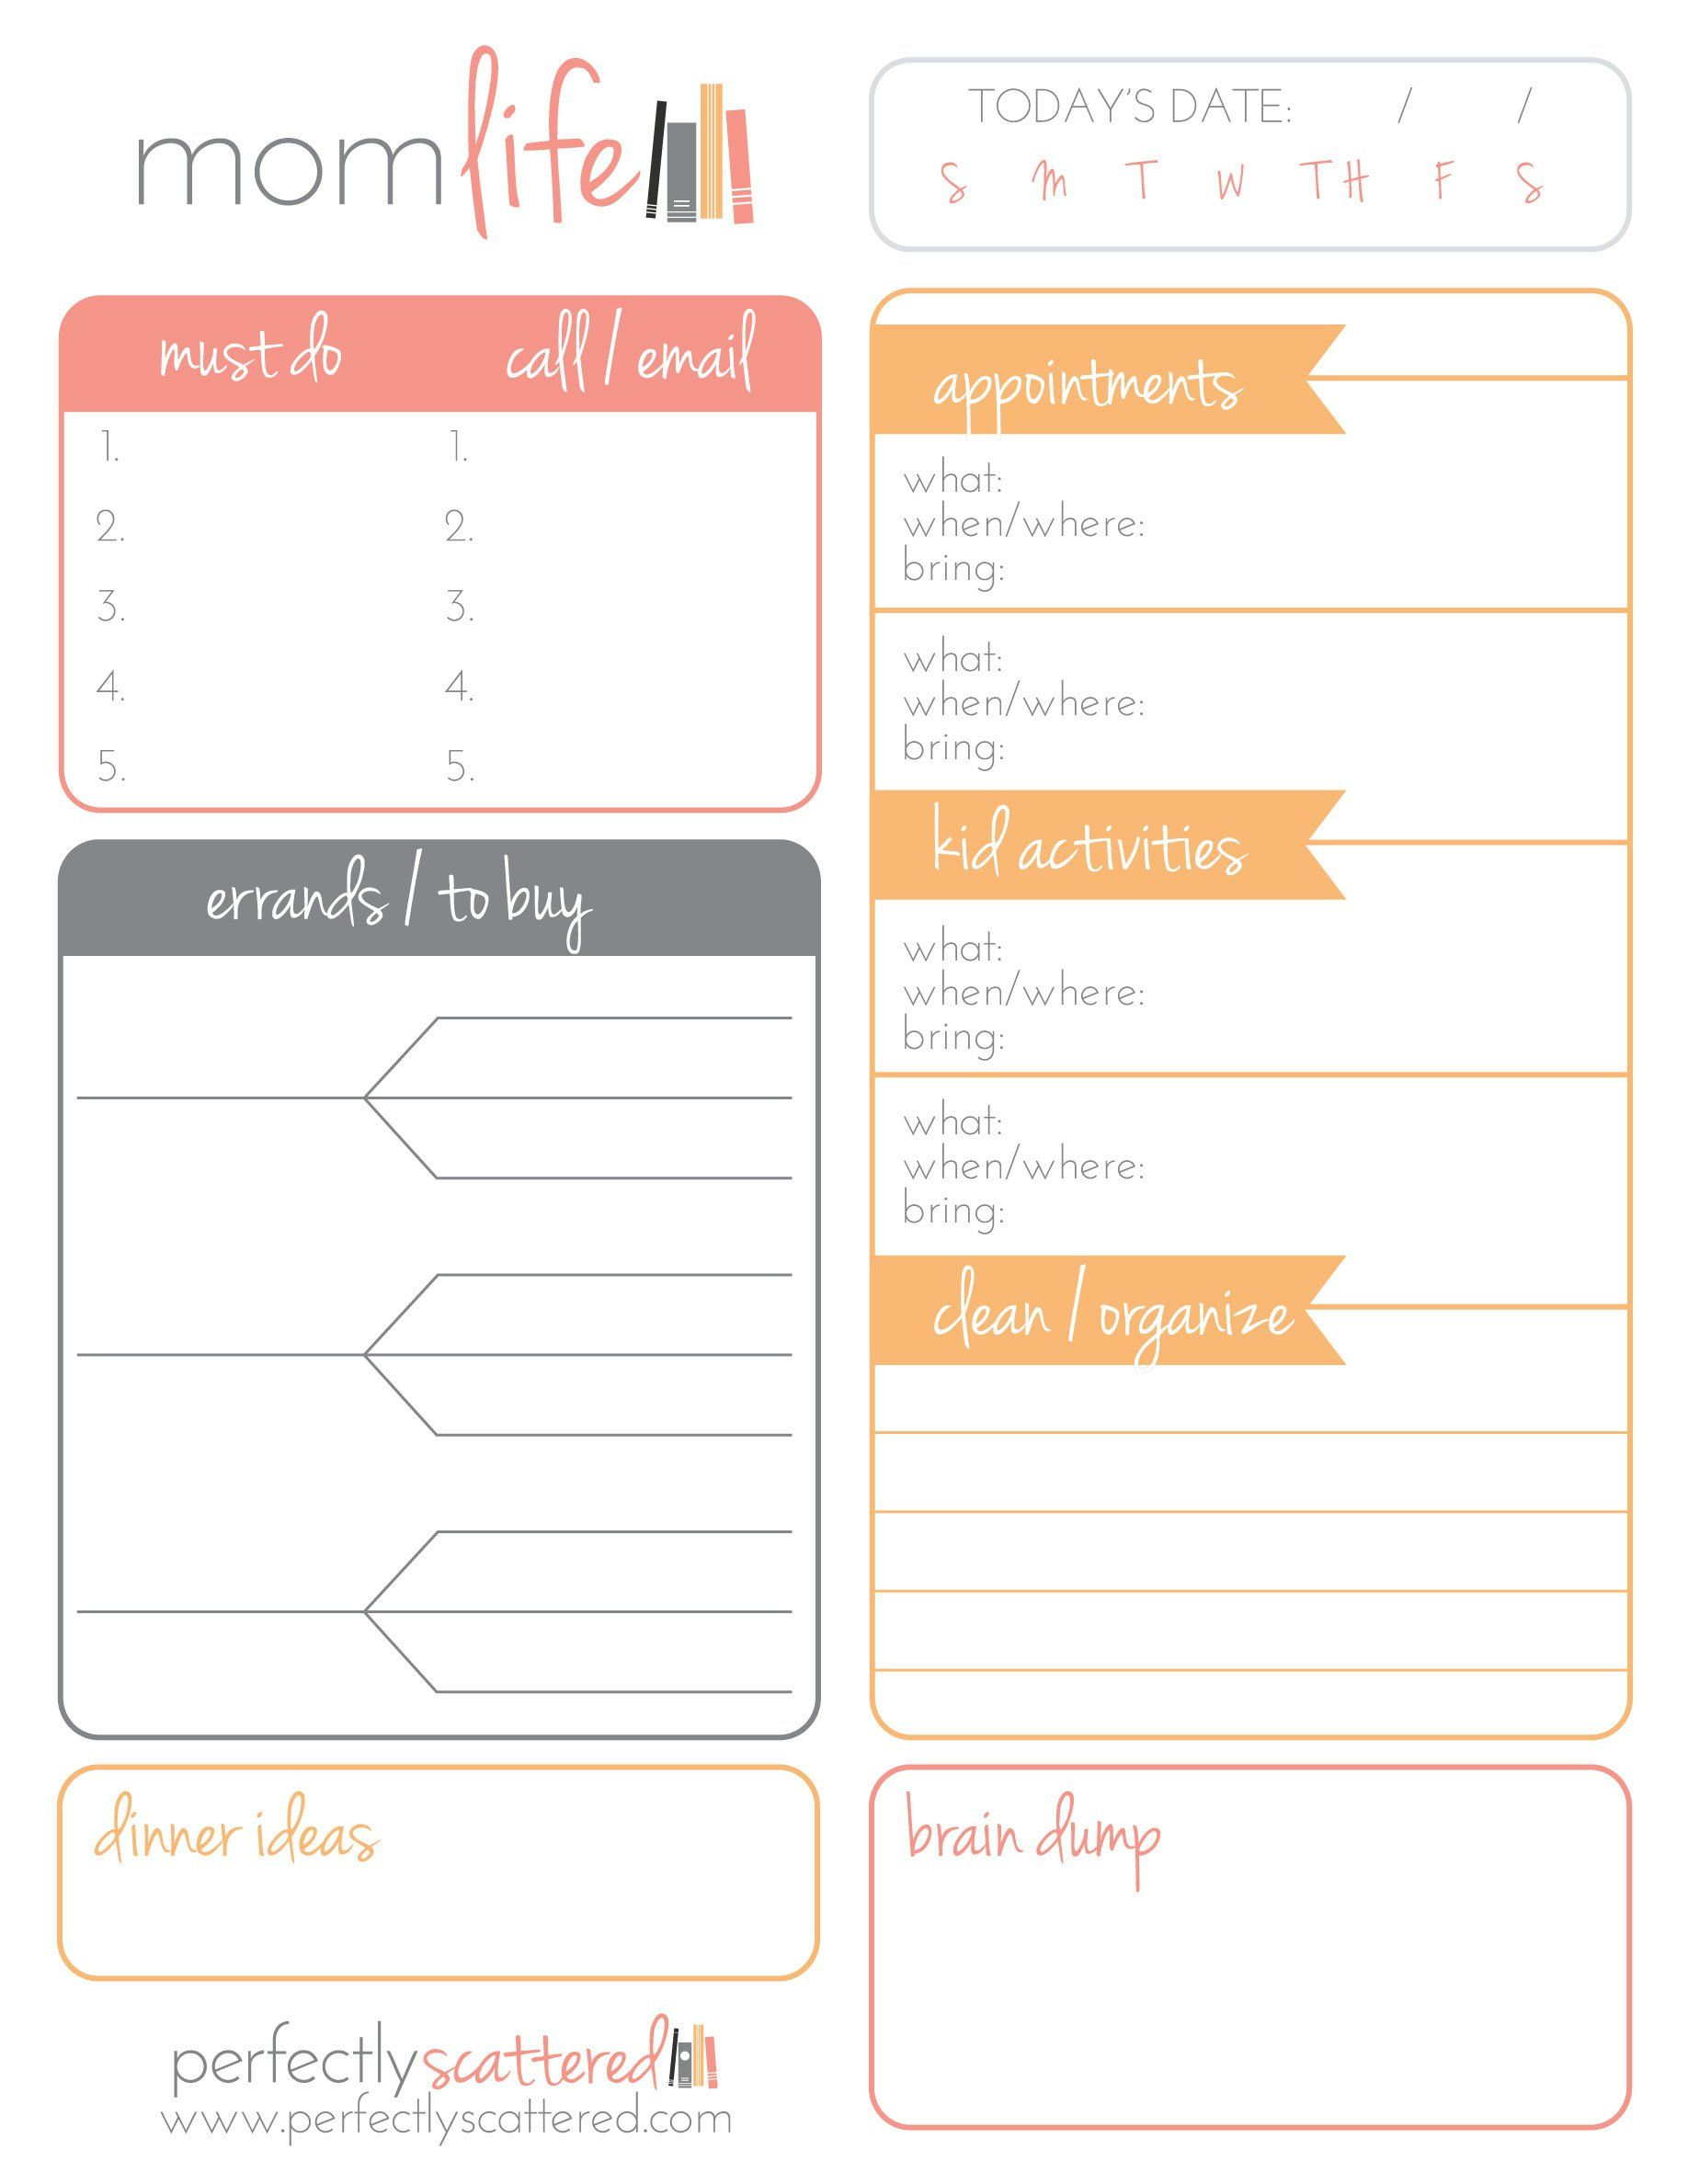 Free Printable Daily Planner for Moms Free Printables Pinterest